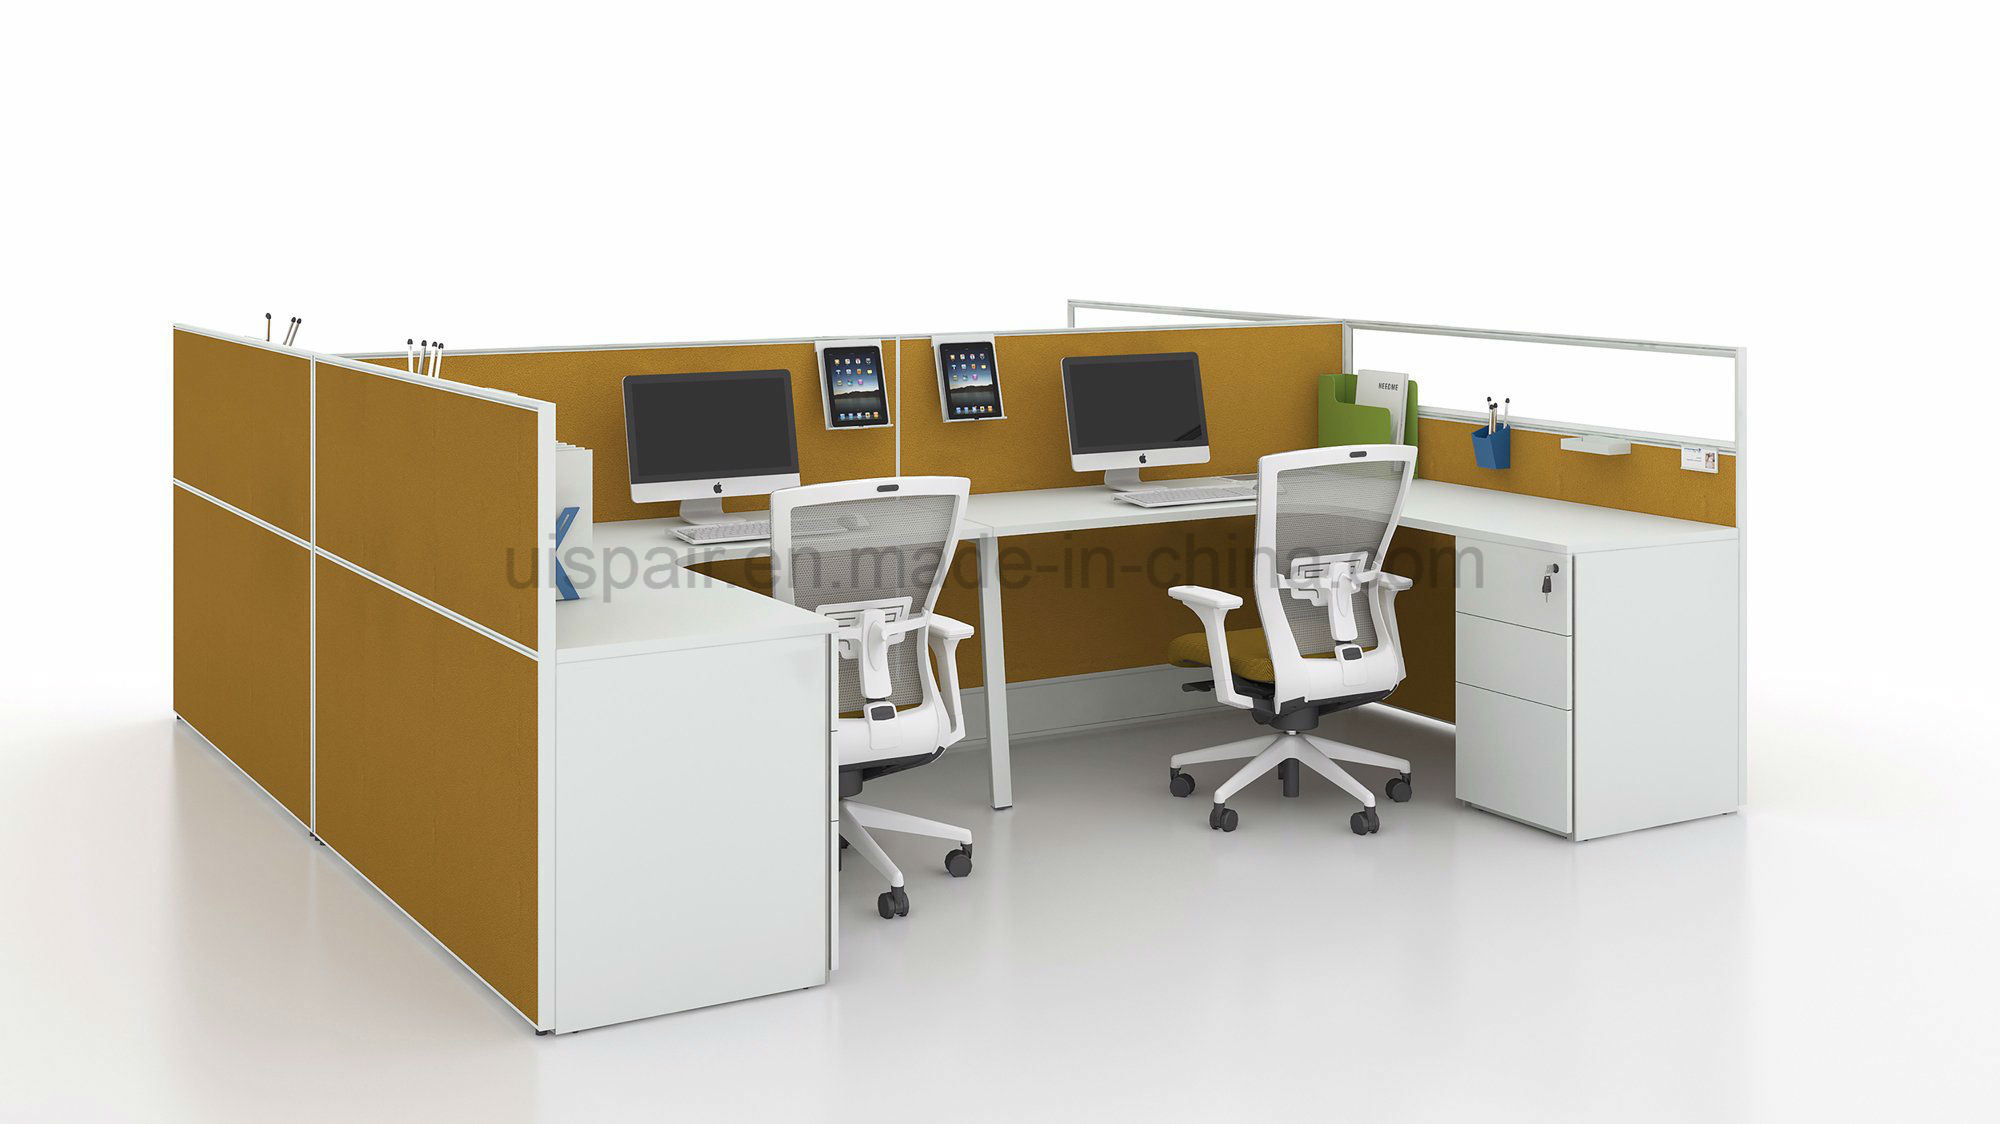 Uispair Modern High Quality Office Partition High Screen Workstation Office Furniture